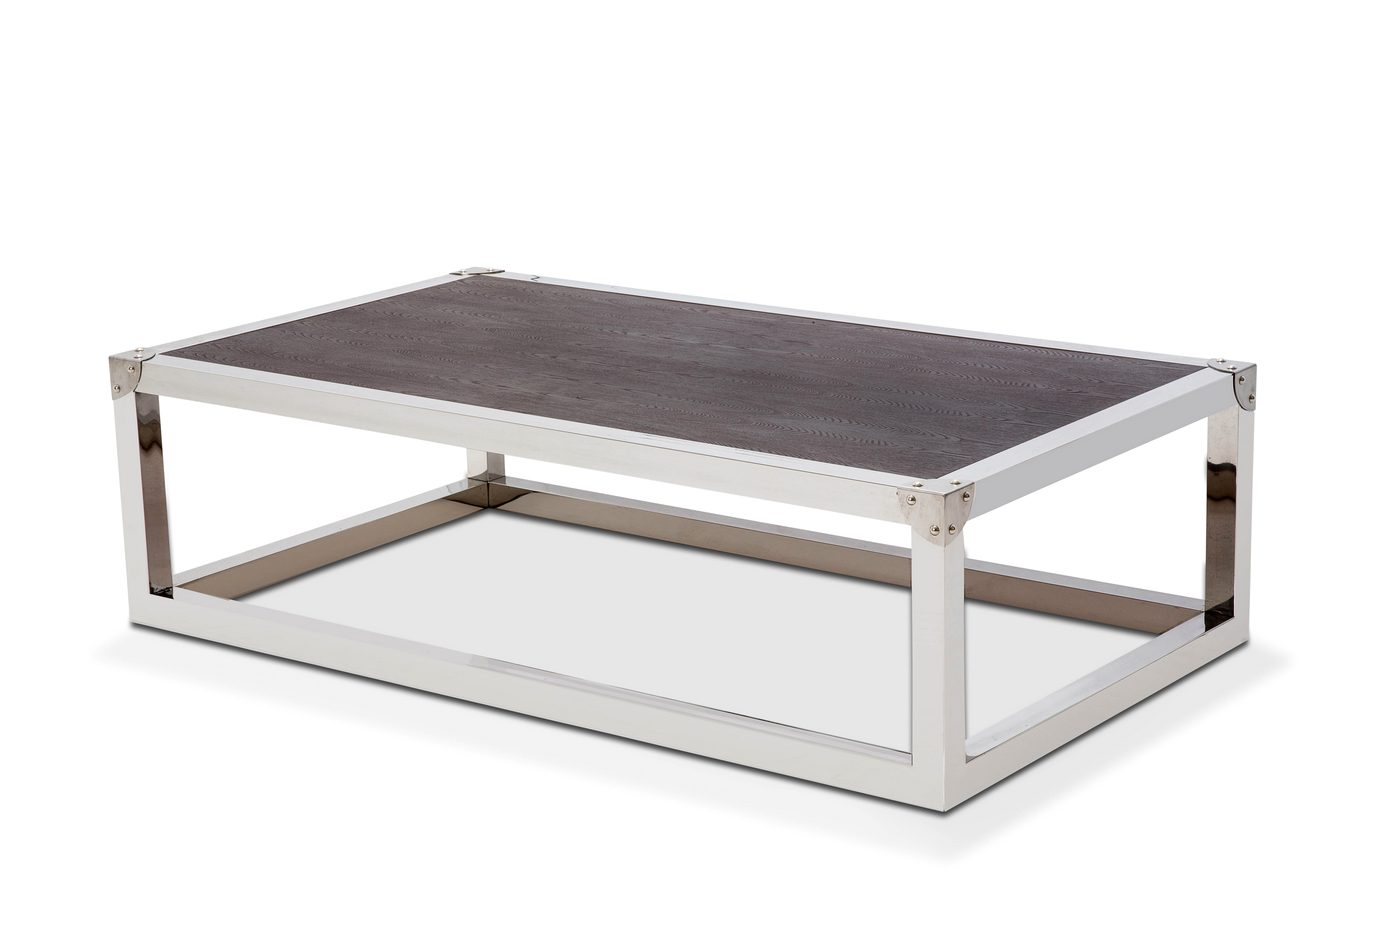 Salvatore Stainless Steel Coffee Table With Wood Top In Espresso Finish